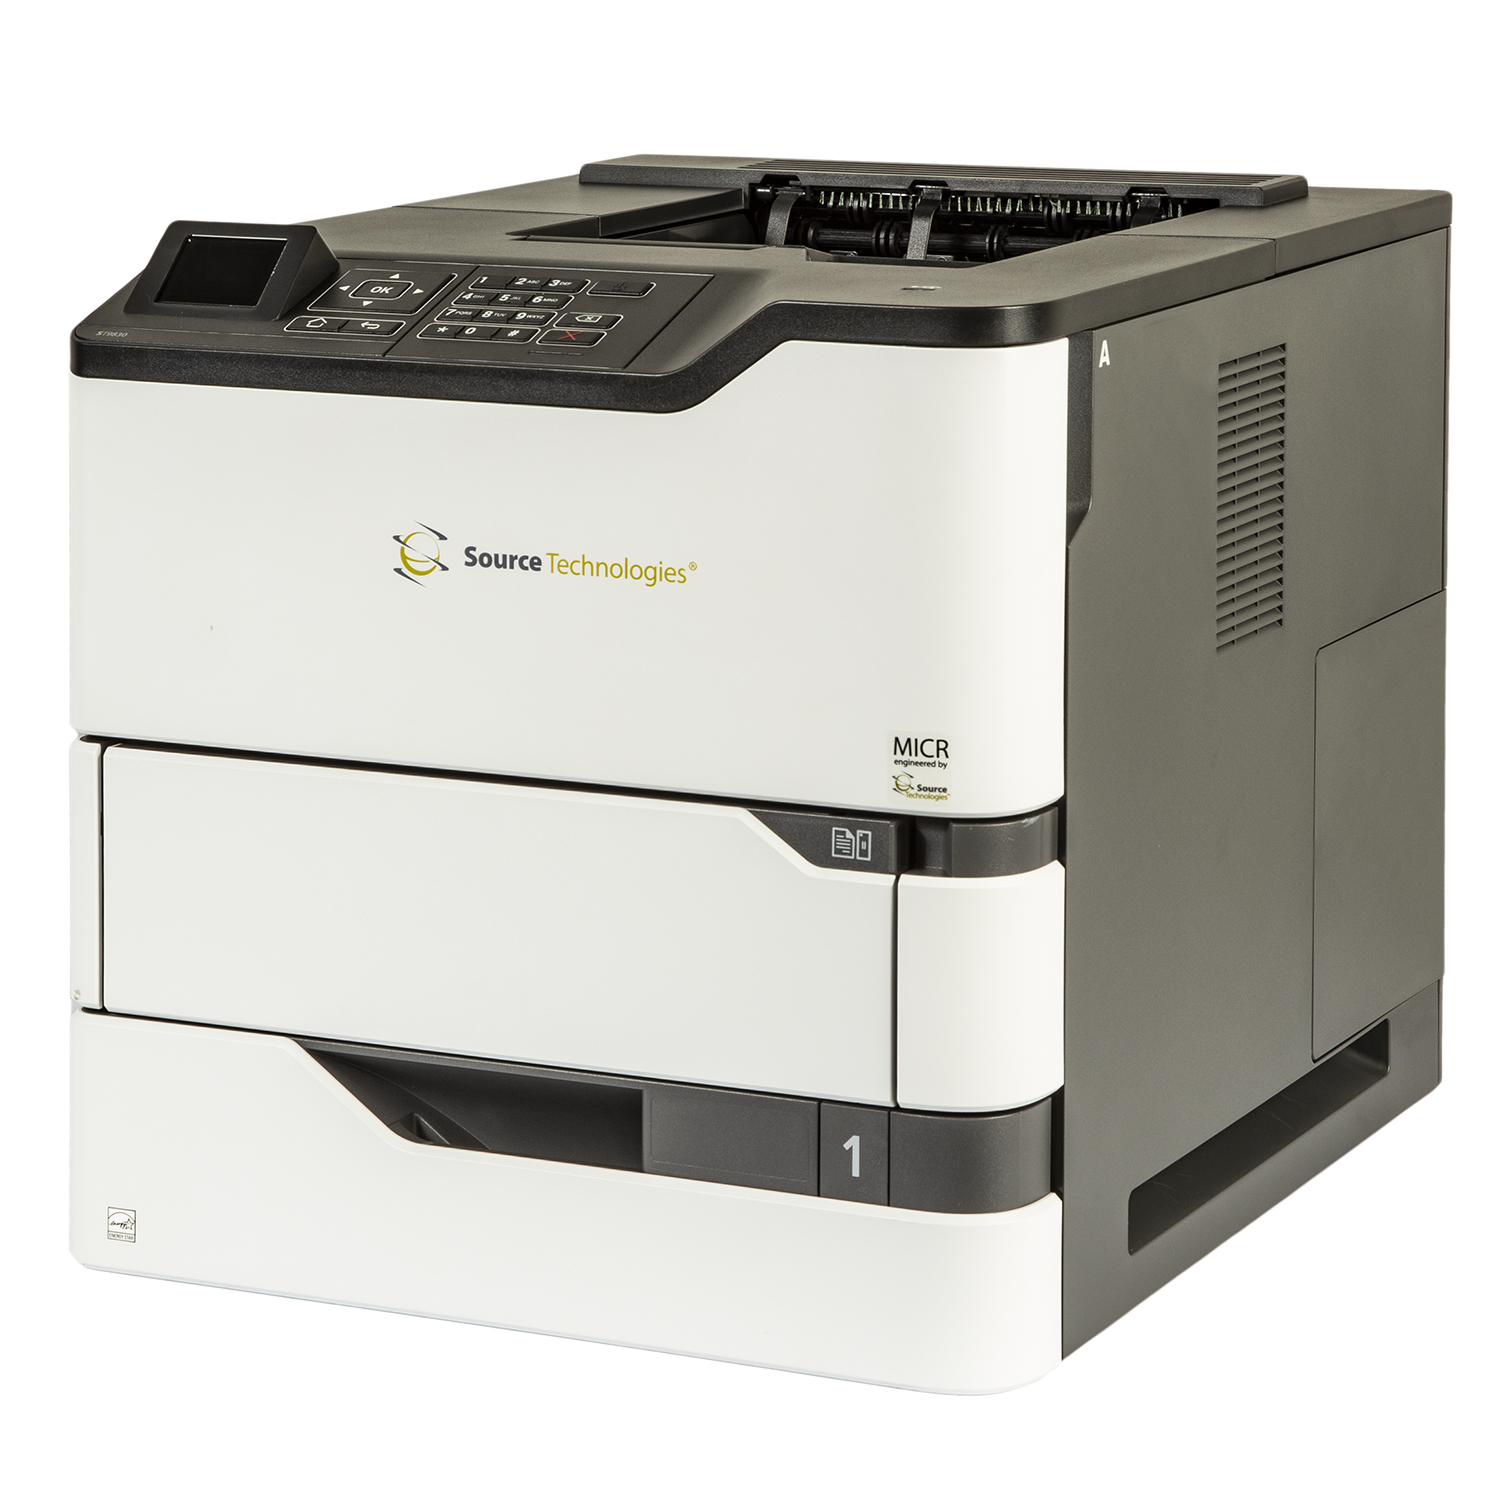 Source Technologies ST98320 Printer